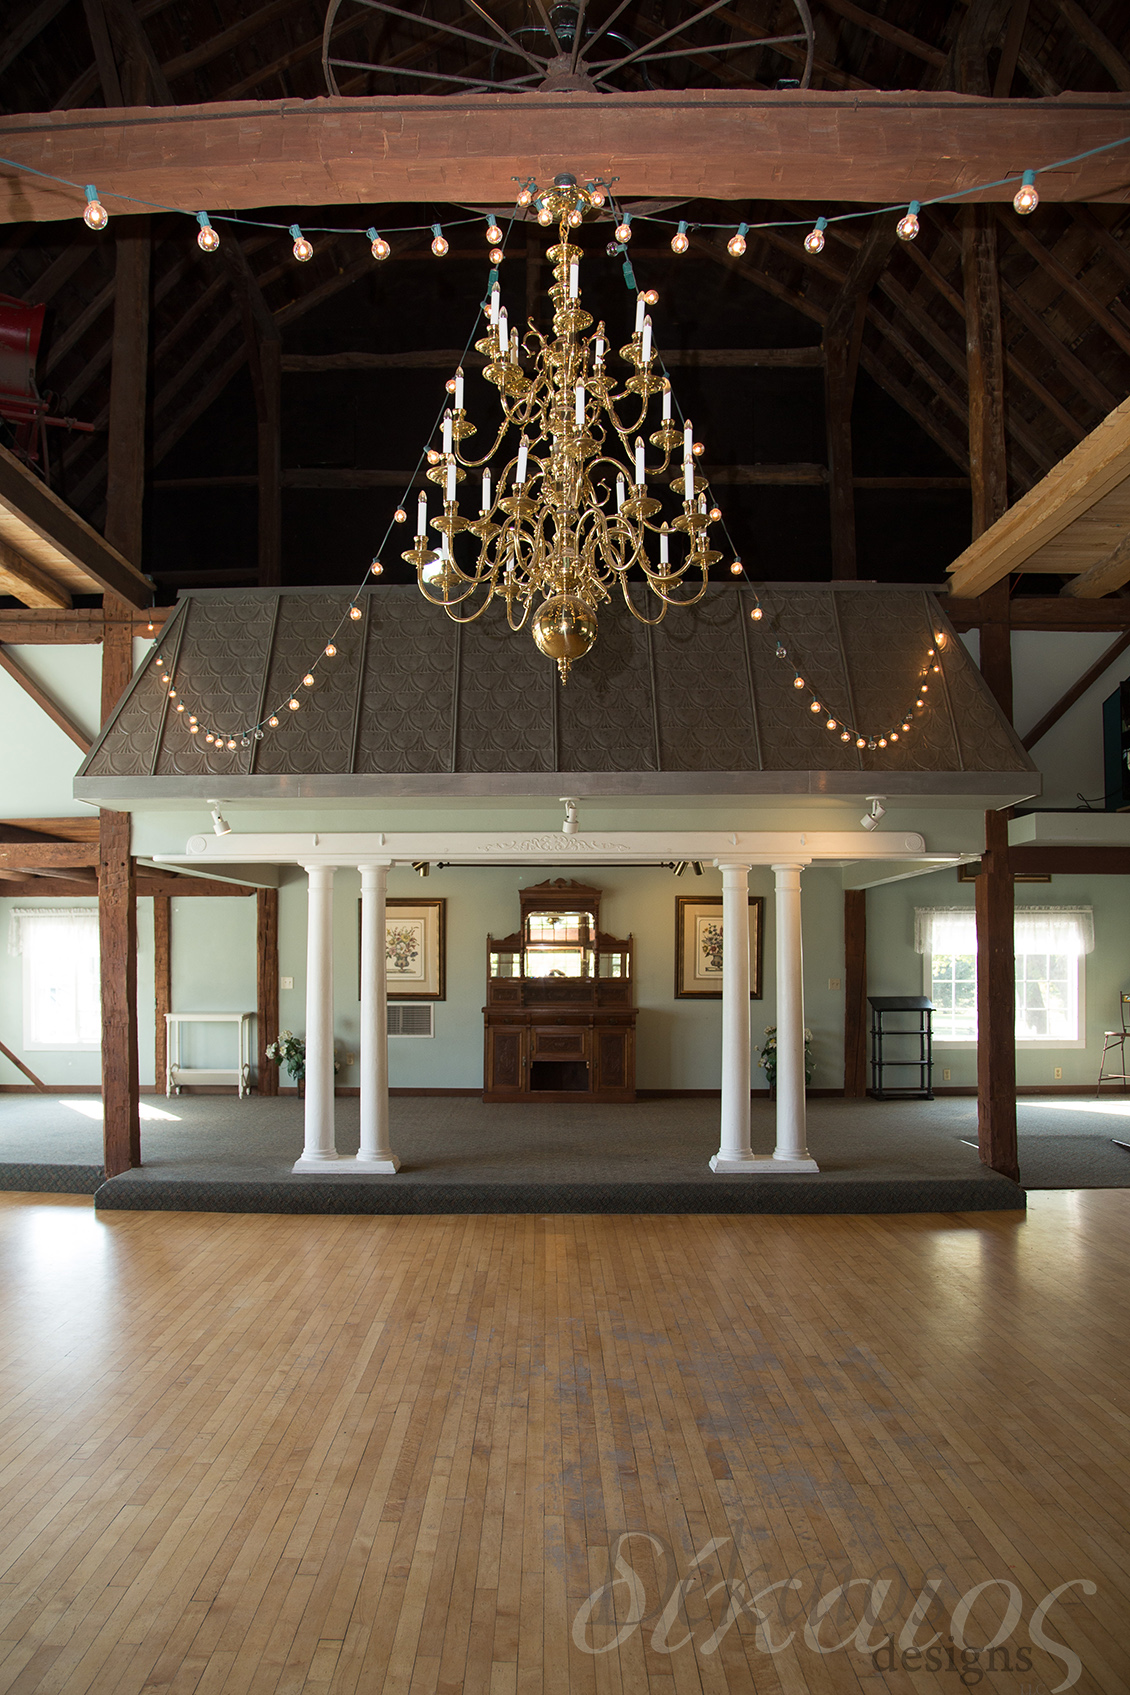 The upper level of the barn with the dance floor.